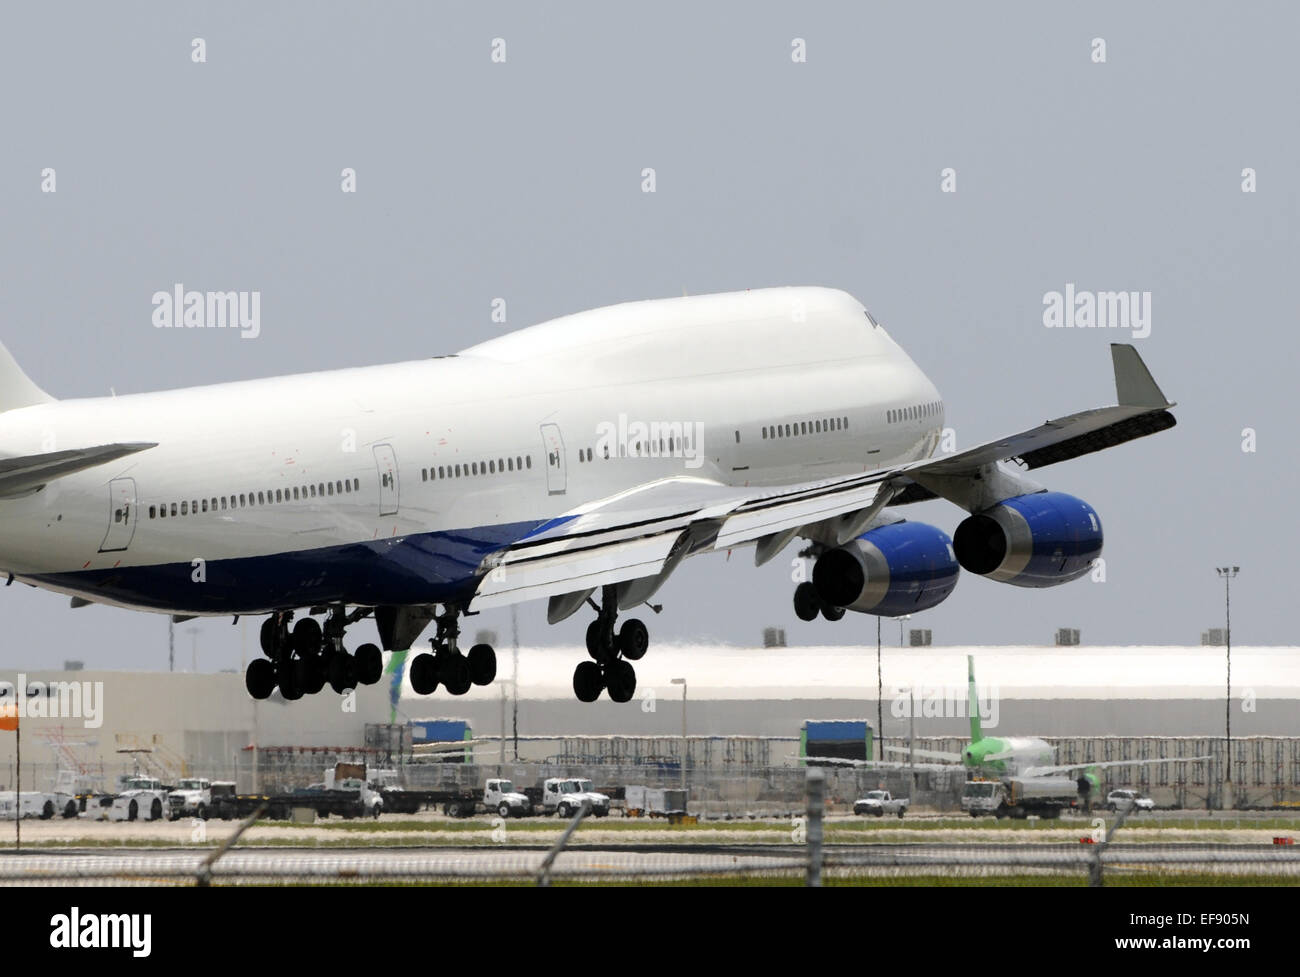 Heavy passenger jet landing at airport Boeing 747 - Stock Image